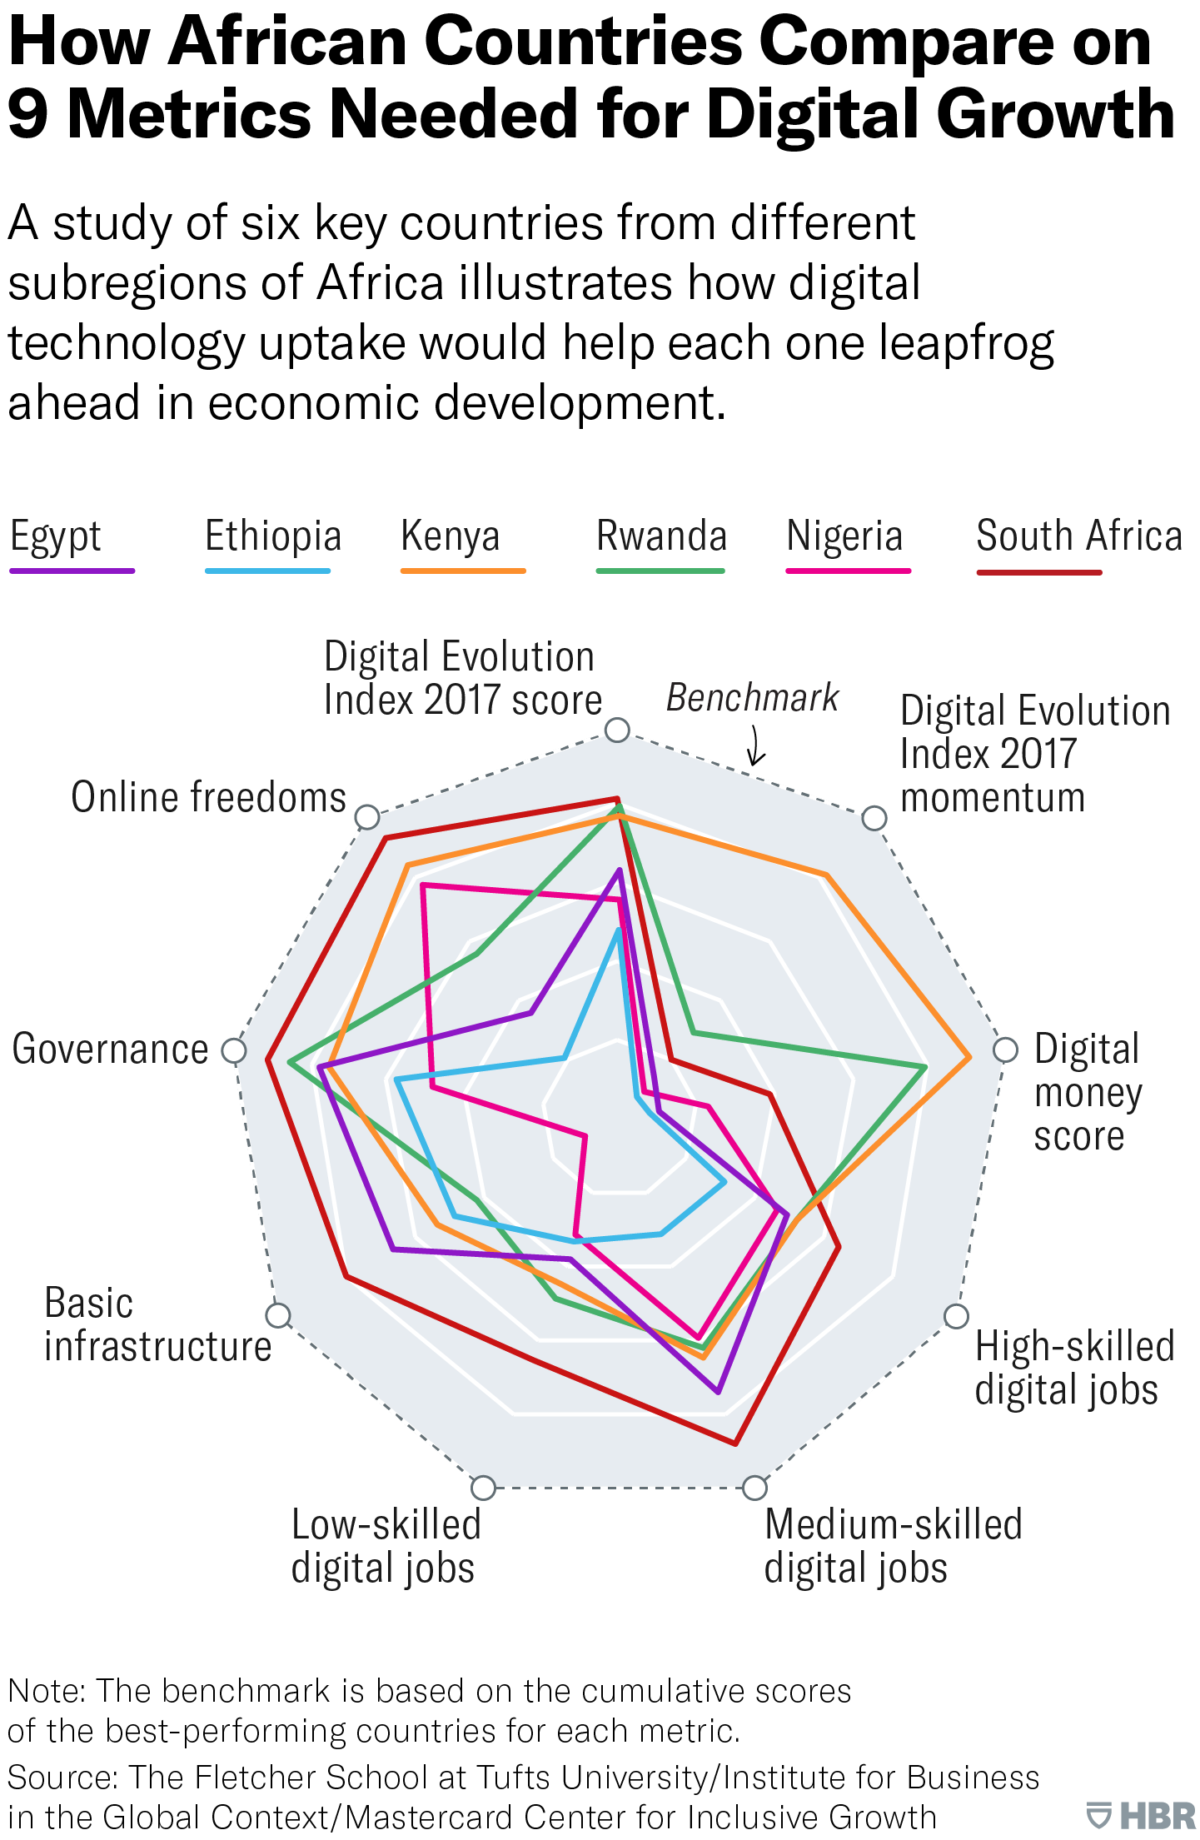 How Africa Countries Compare on 9 Metrics Needed for Digital Growth